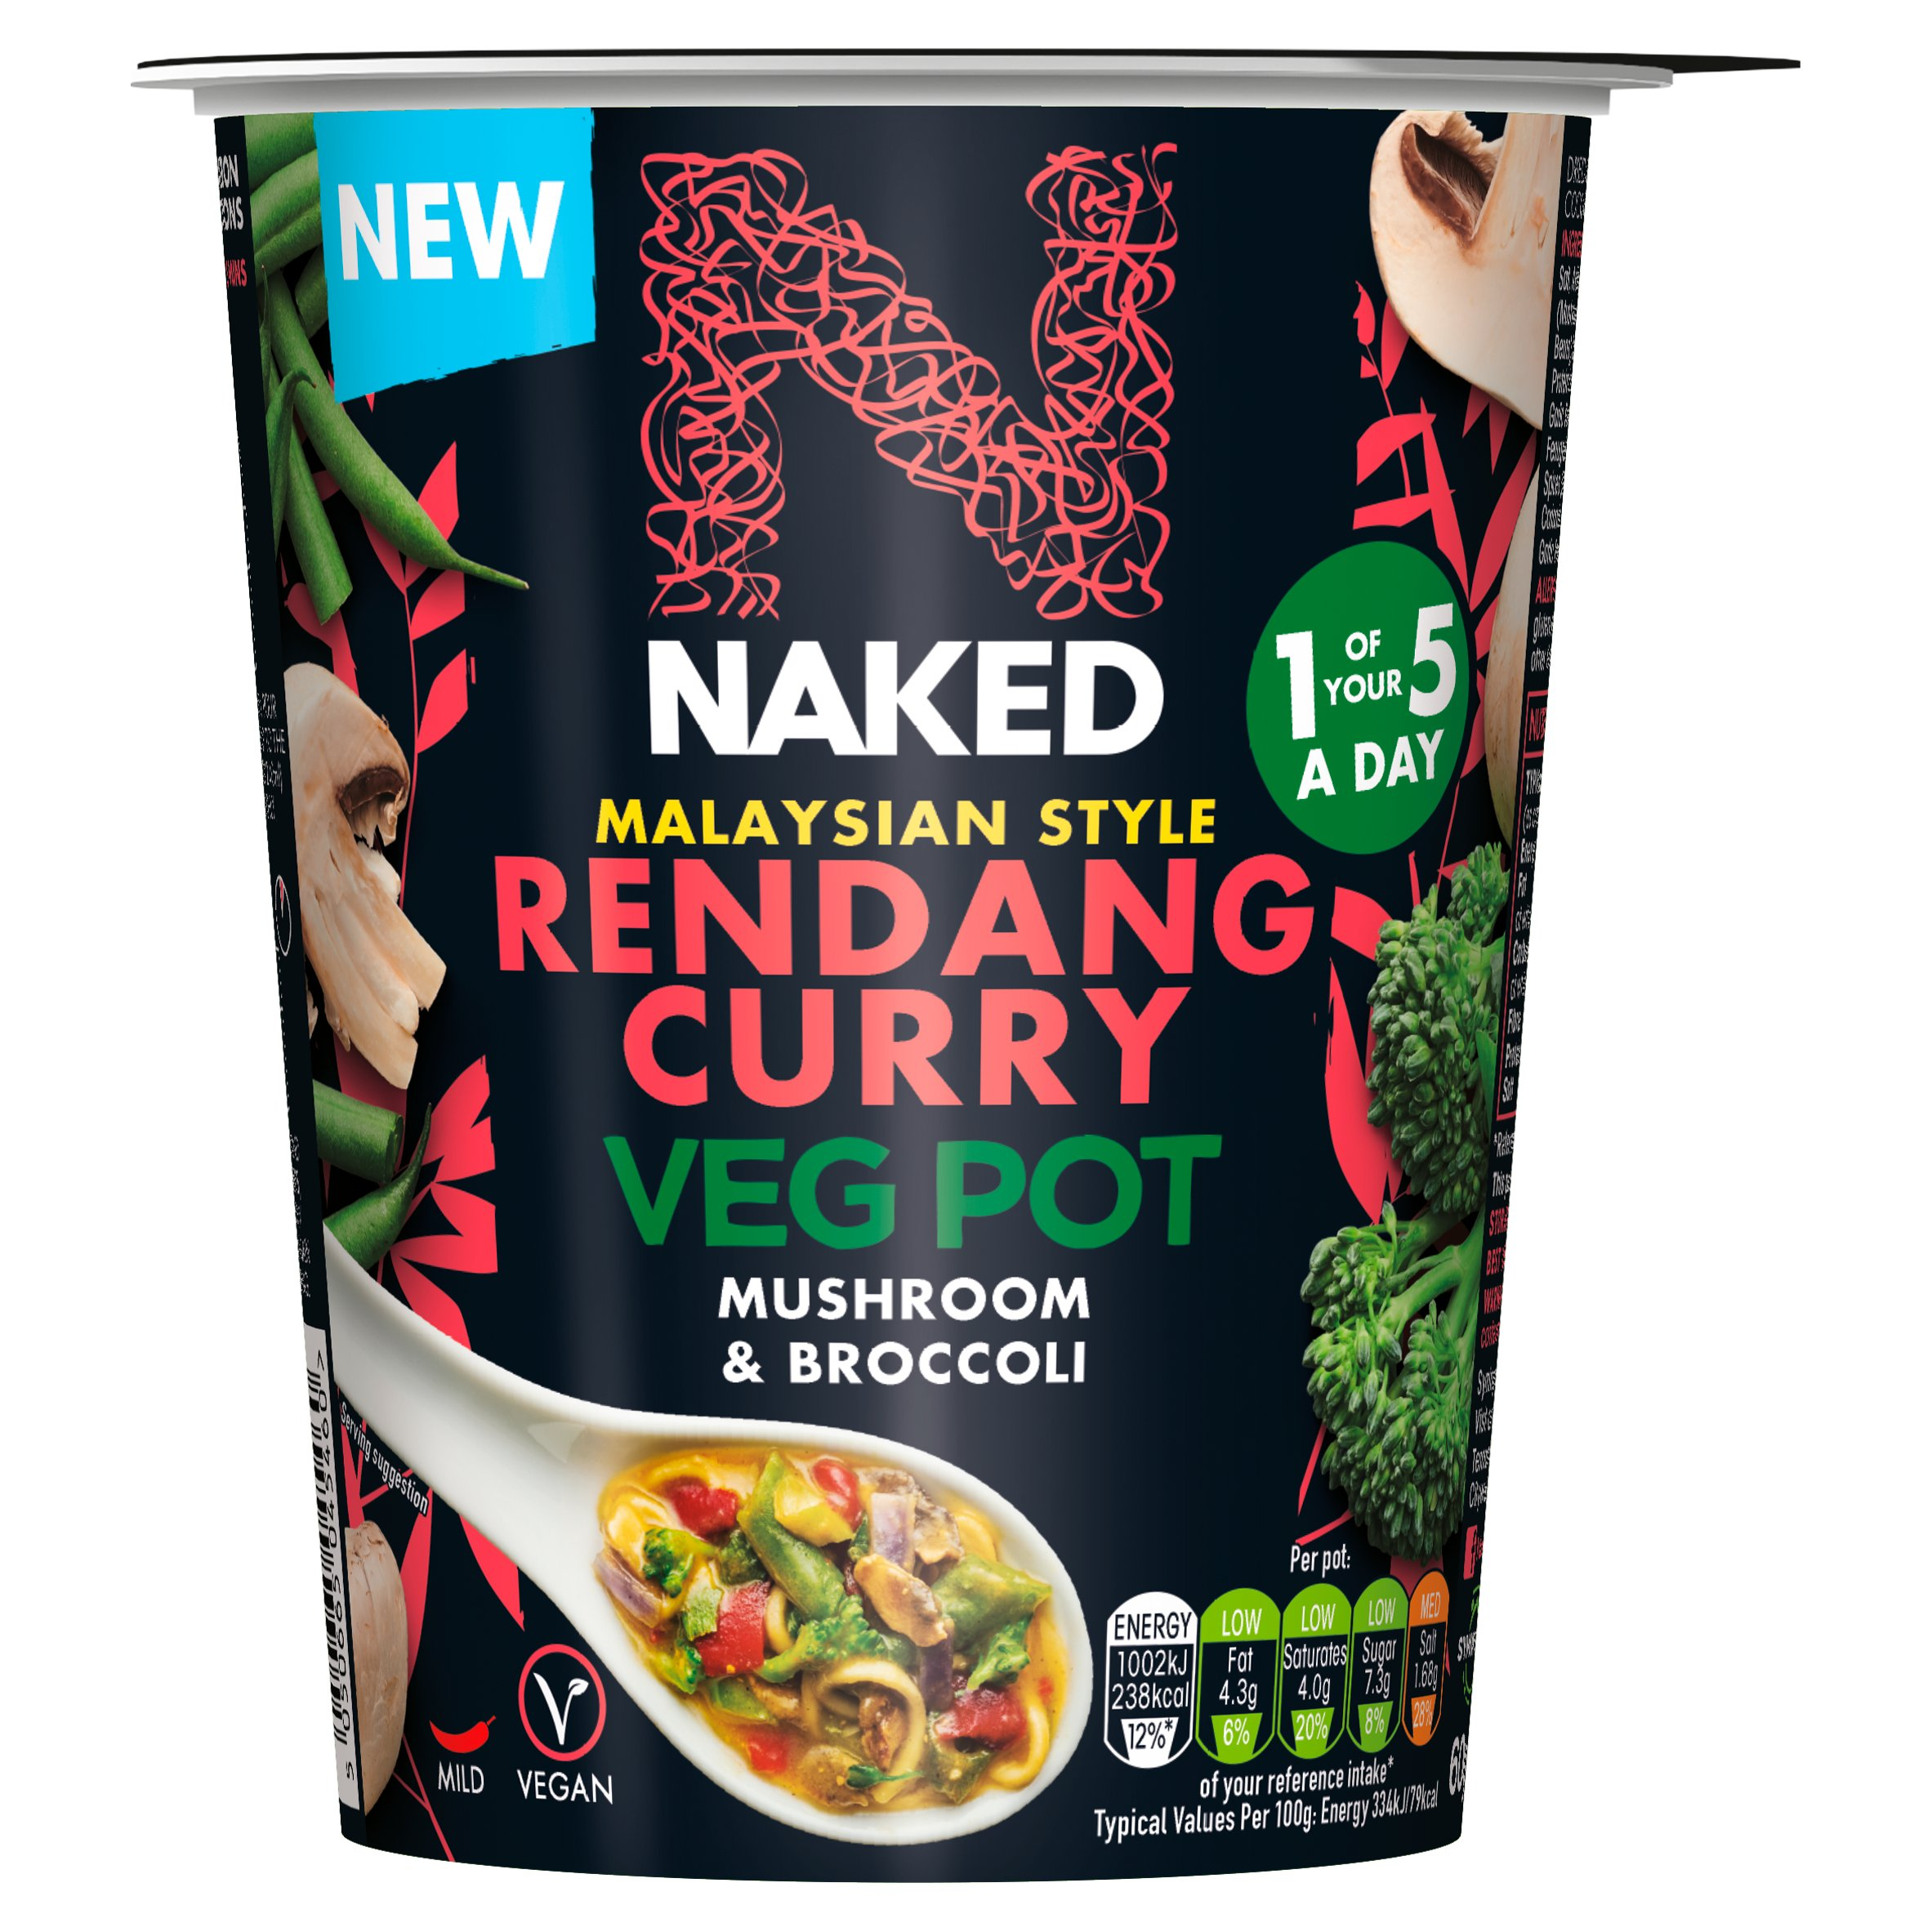 Naked Malaysian Rendang Curry Vegetable Pot 60G - Tesco Groceries